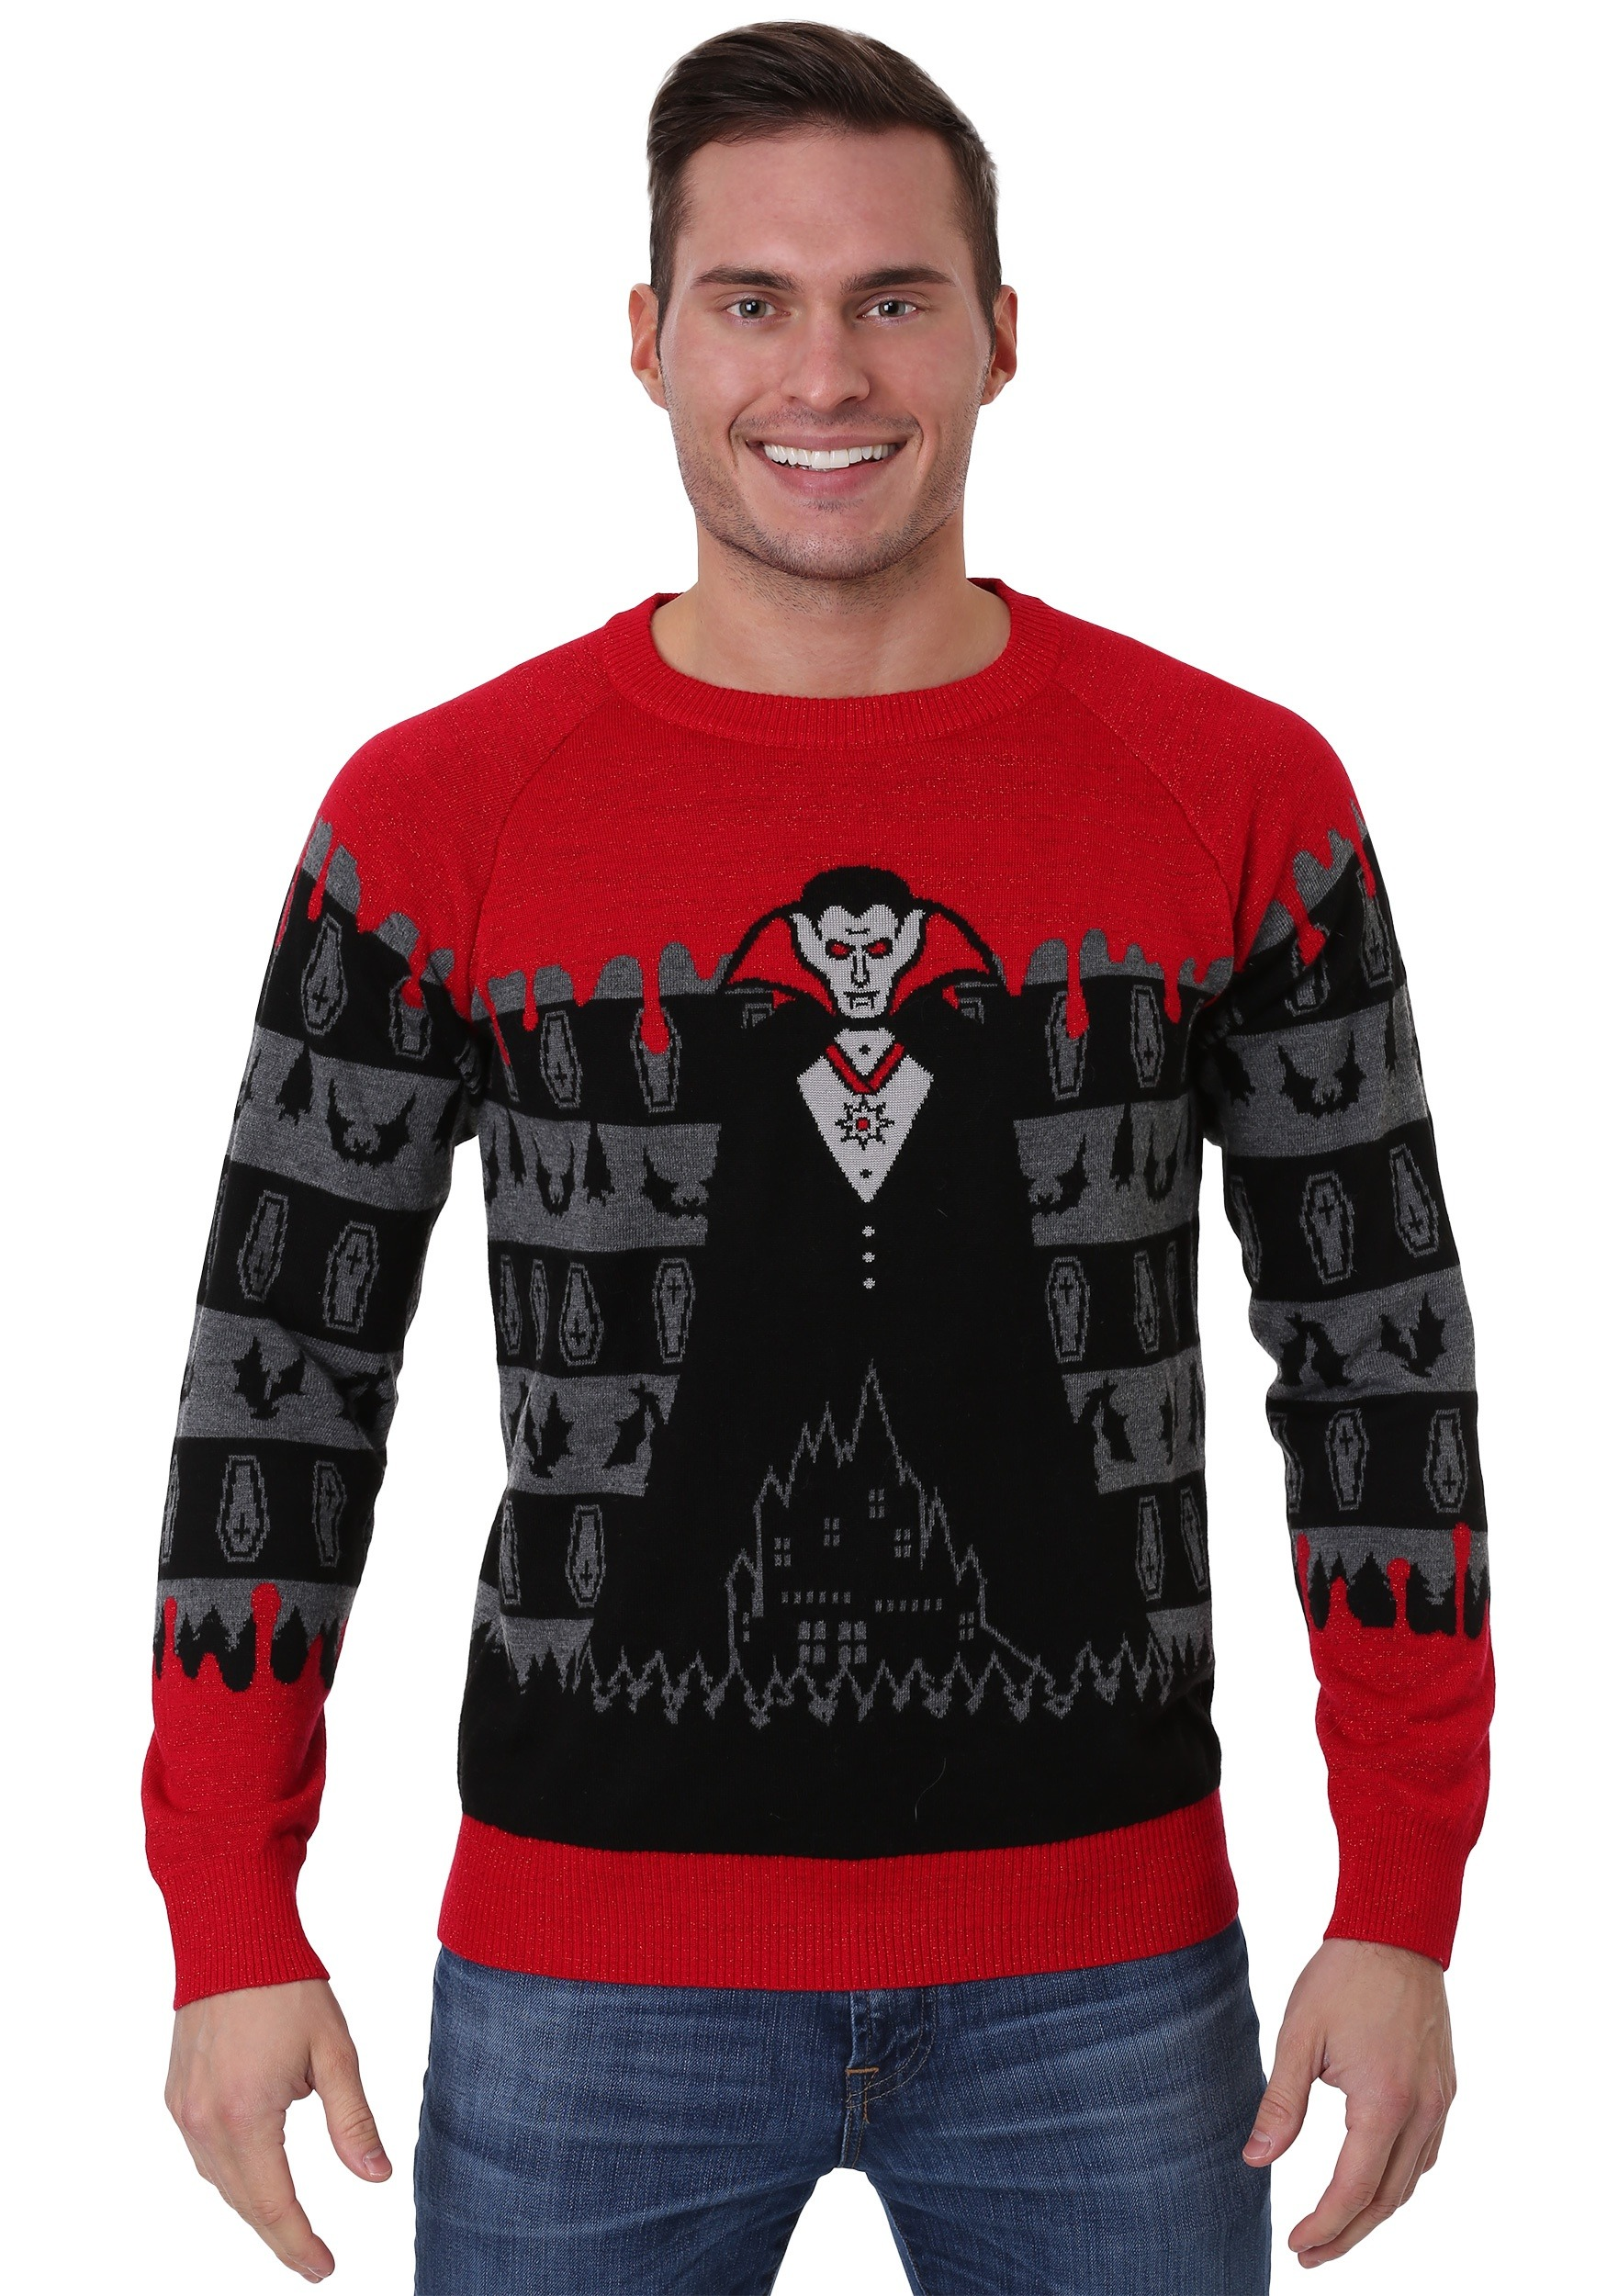 Dracula Vampire Halloween Sweater for Adults